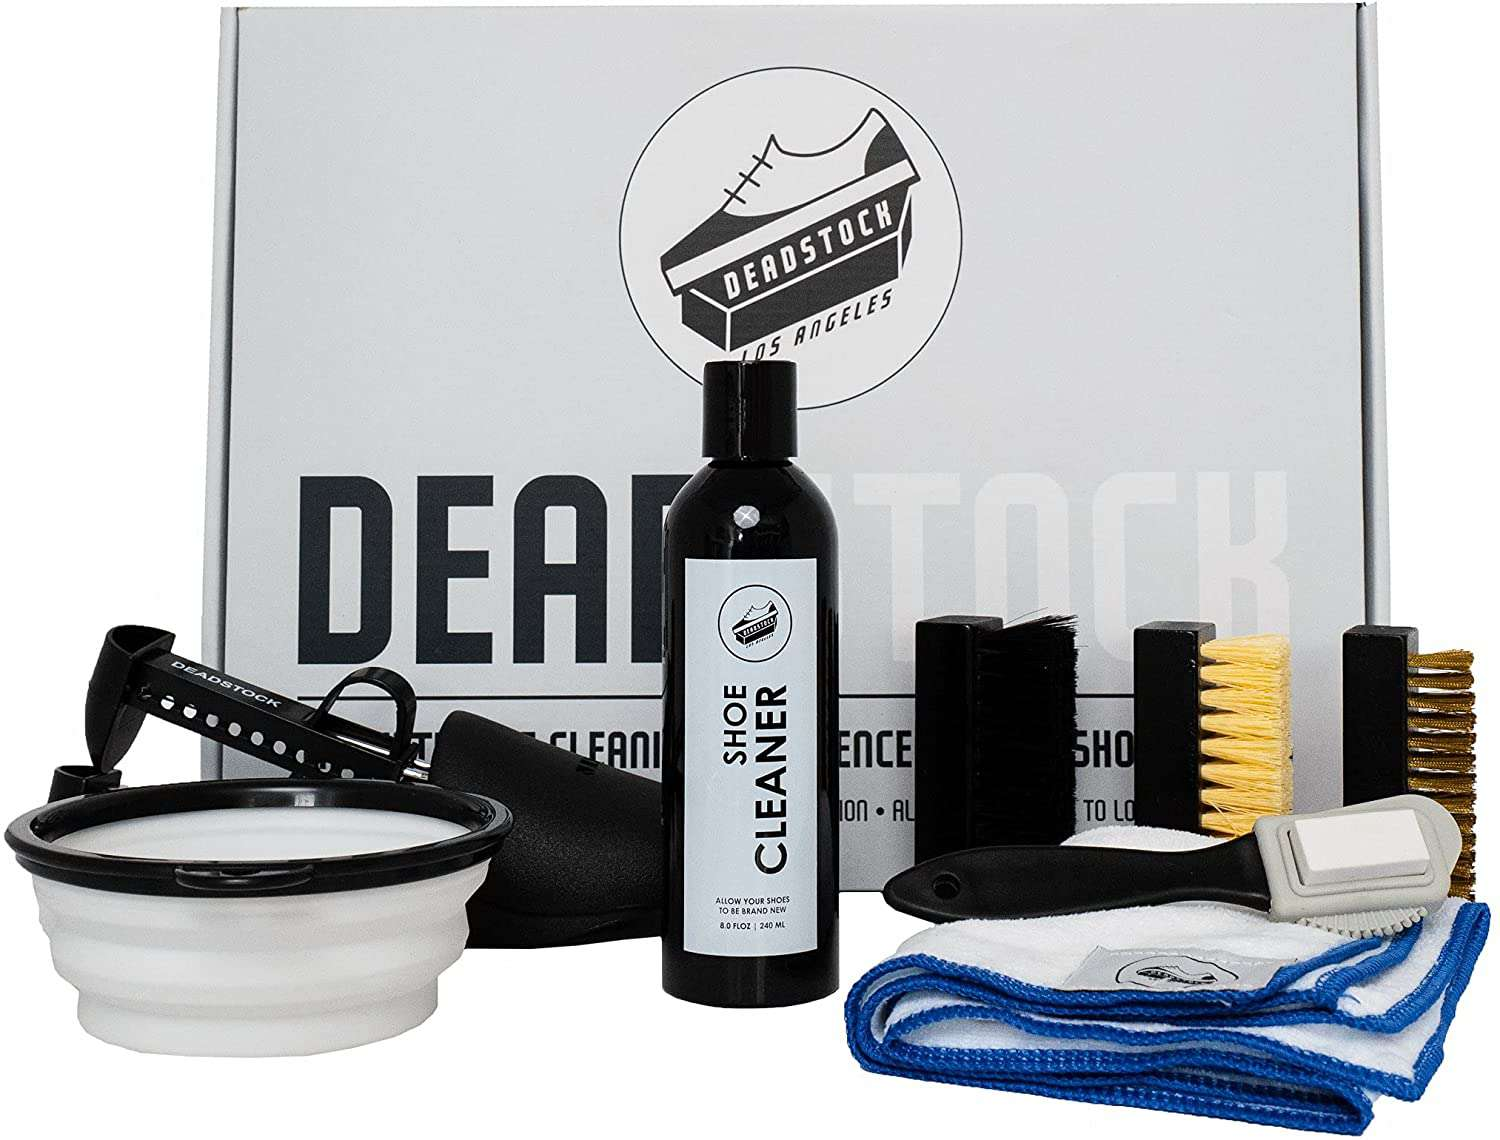 Deadstock Los Angeles Shoe Cleaner Kit - Sneaker Cleaner Ultimate Cleaning Experience